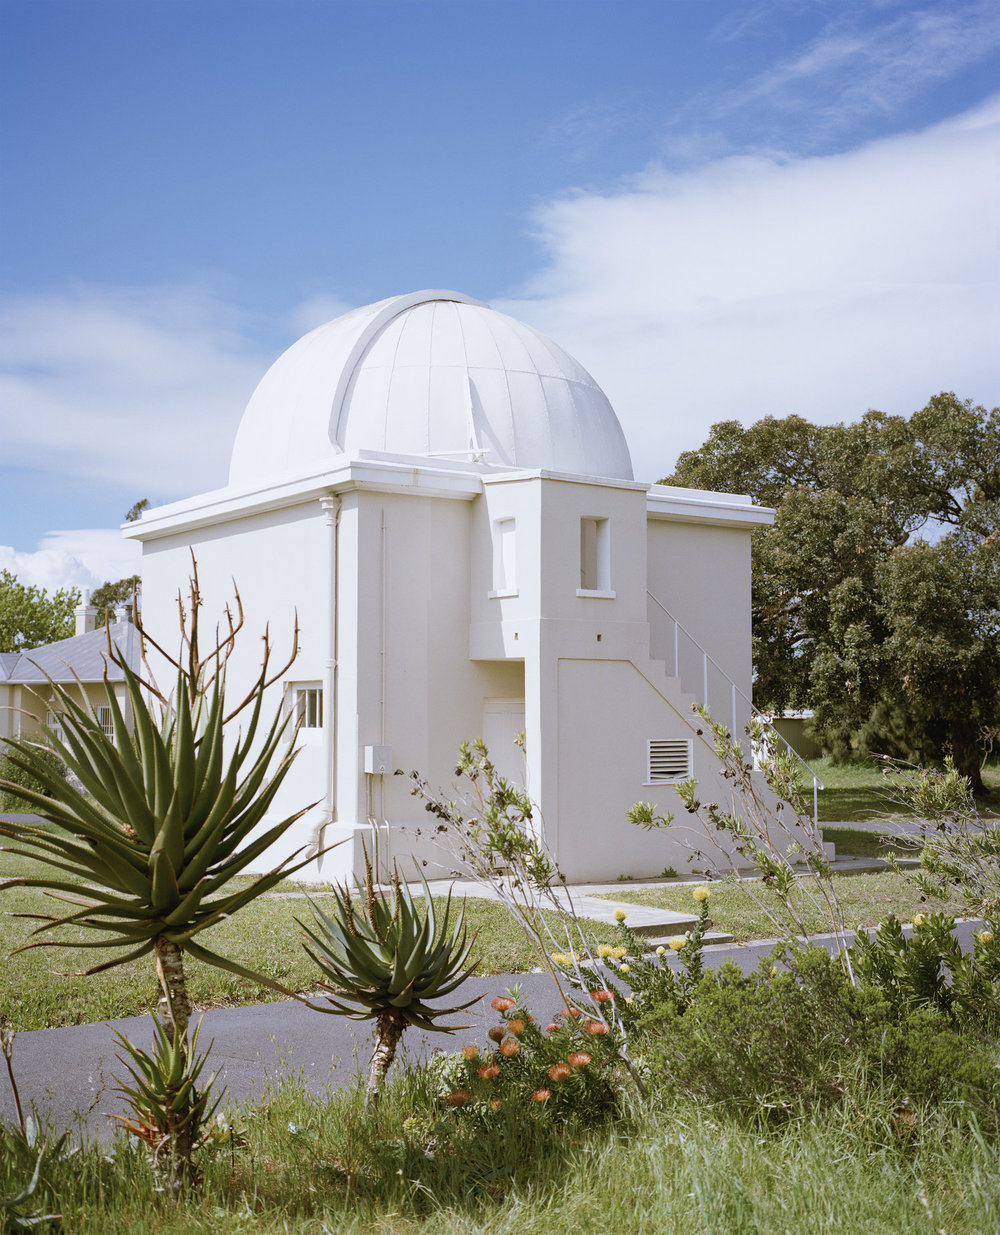 ASTROGRAPHIC TELESCOPE BUILDING 1890, SAAO, OBSERVATORY, CAPE TOWN